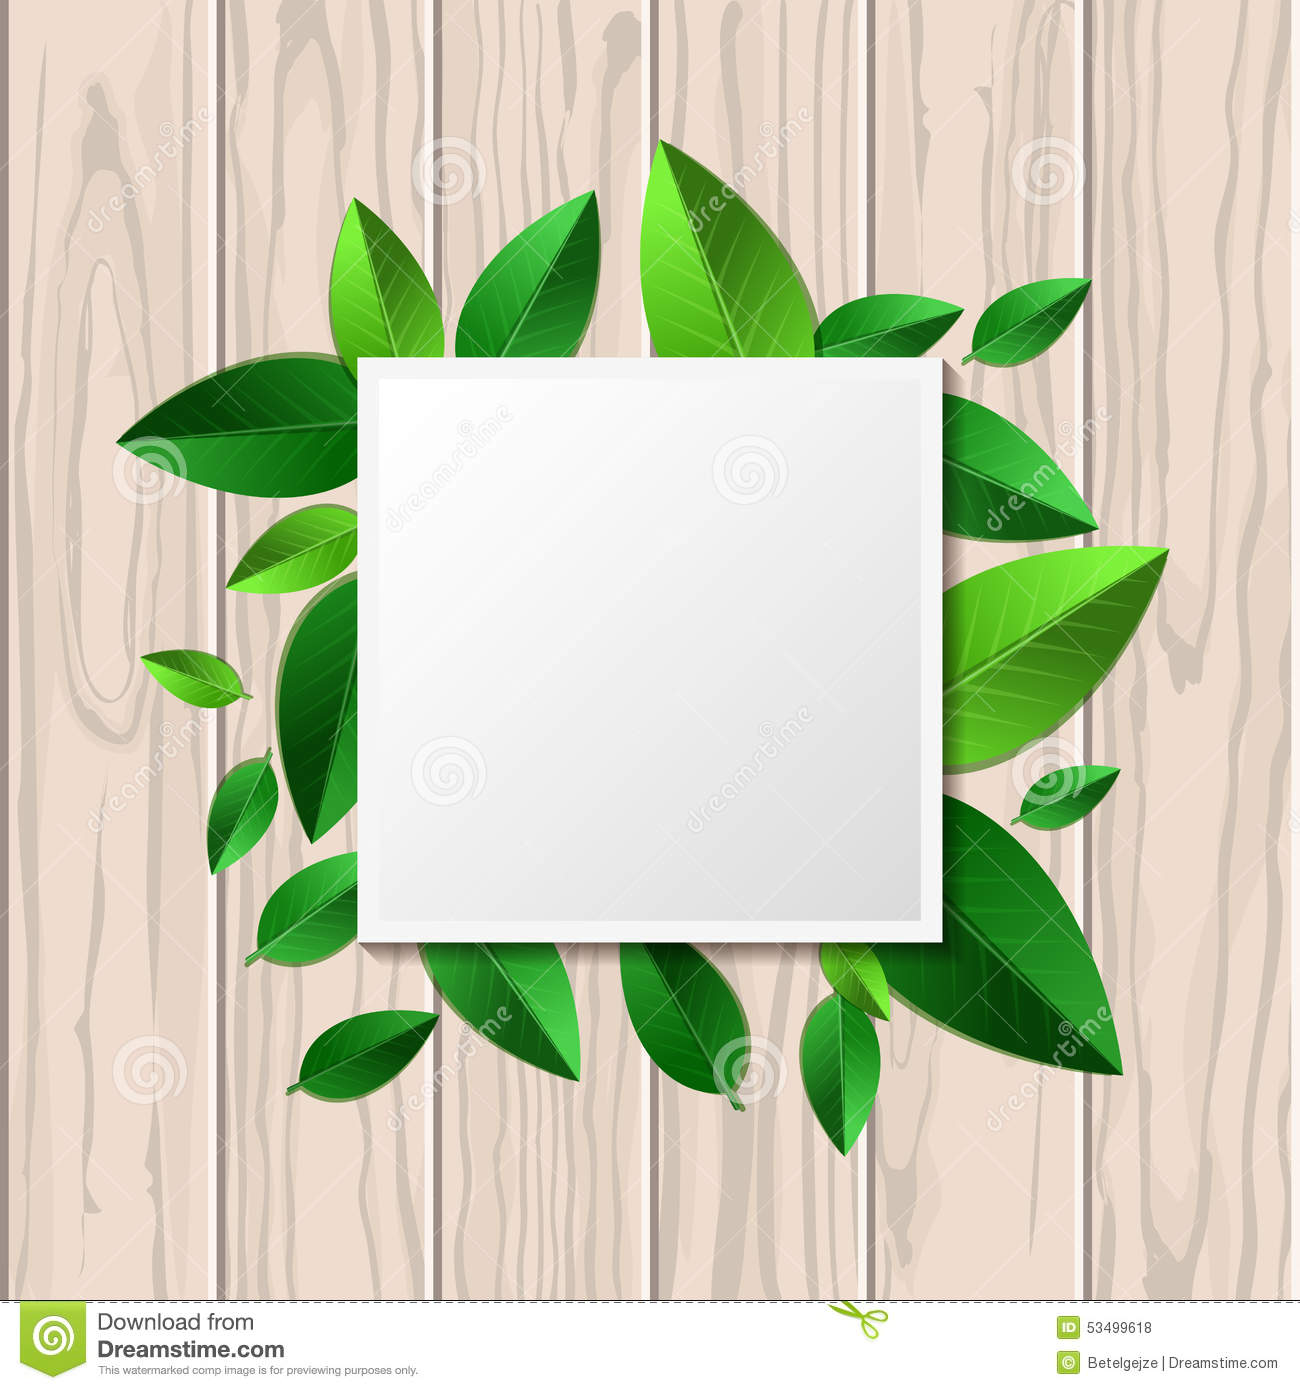 Natural Wooden Texture Background And Square Green Leaf